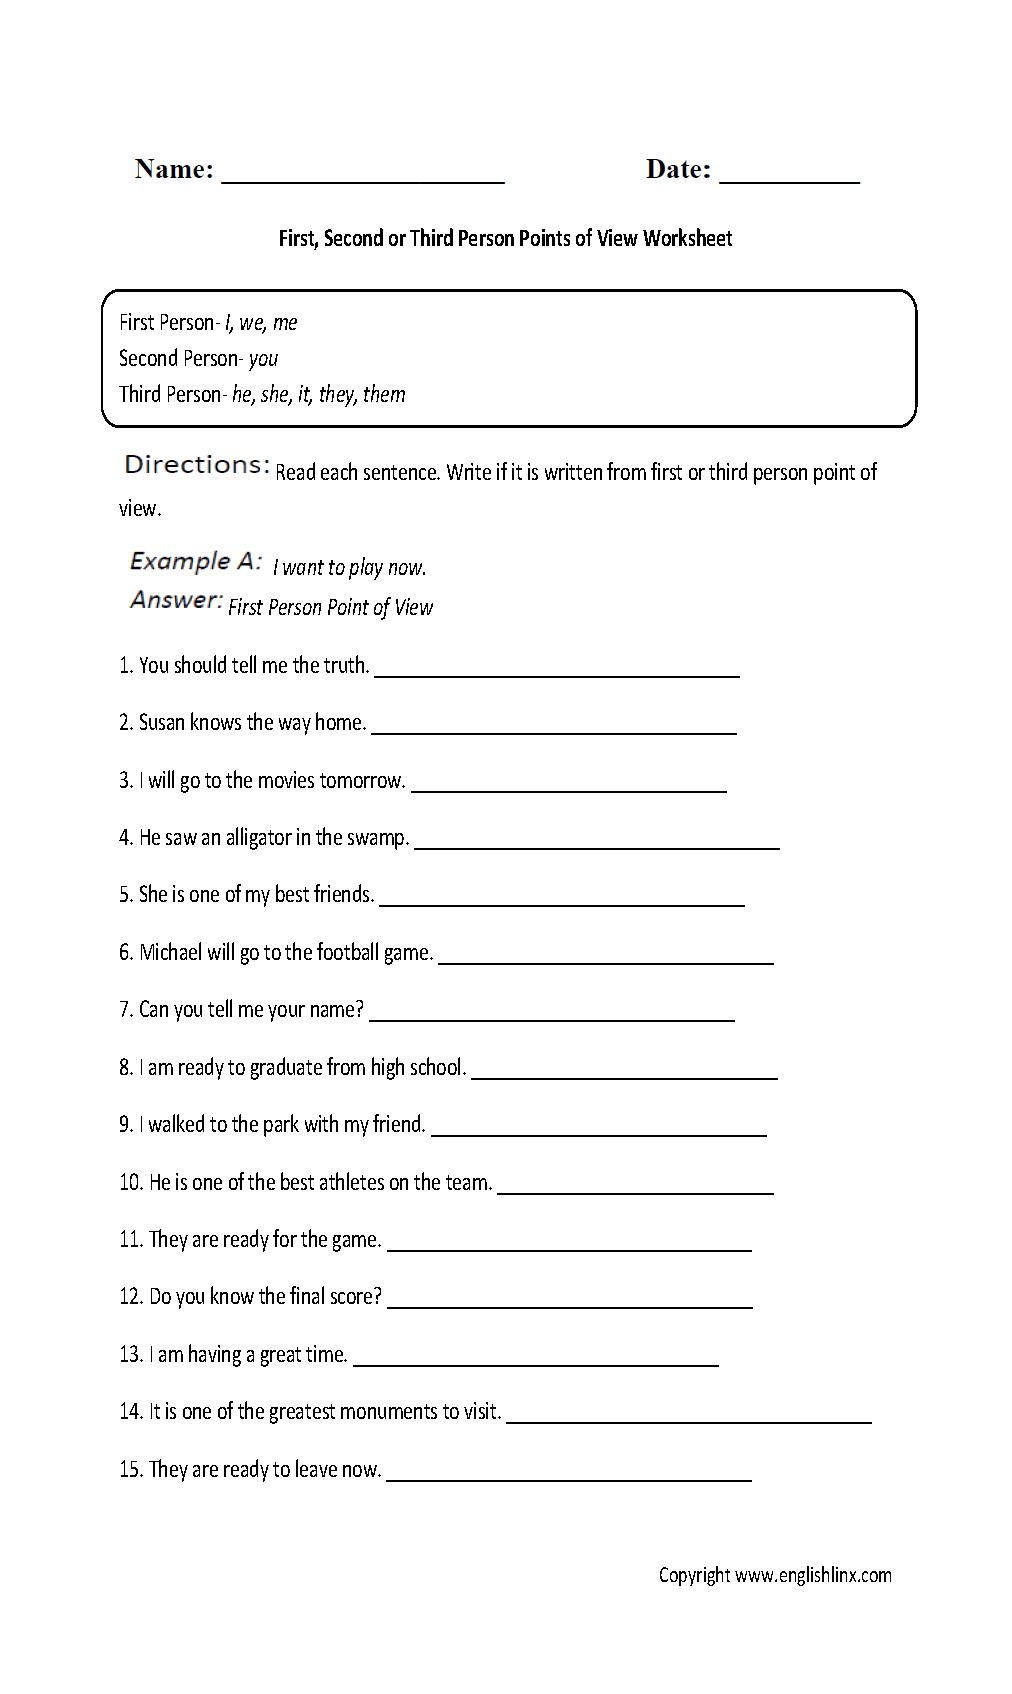 Weirdmailus  Marvelous Englishlinxcom  Point Of View Worksheets With Handsome Point Of View Worksheet With Alluring Nd Grade Maths Worksheets Also Place Value Worksheet Grade  In Addition Symetry Worksheets And Grade  Natural Science Worksheets As Well As Texas Geography Worksheets Additionally Worksheet On Interjections From Englishlinxcom With Weirdmailus  Handsome Englishlinxcom  Point Of View Worksheets With Alluring Point Of View Worksheet And Marvelous Nd Grade Maths Worksheets Also Place Value Worksheet Grade  In Addition Symetry Worksheets From Englishlinxcom